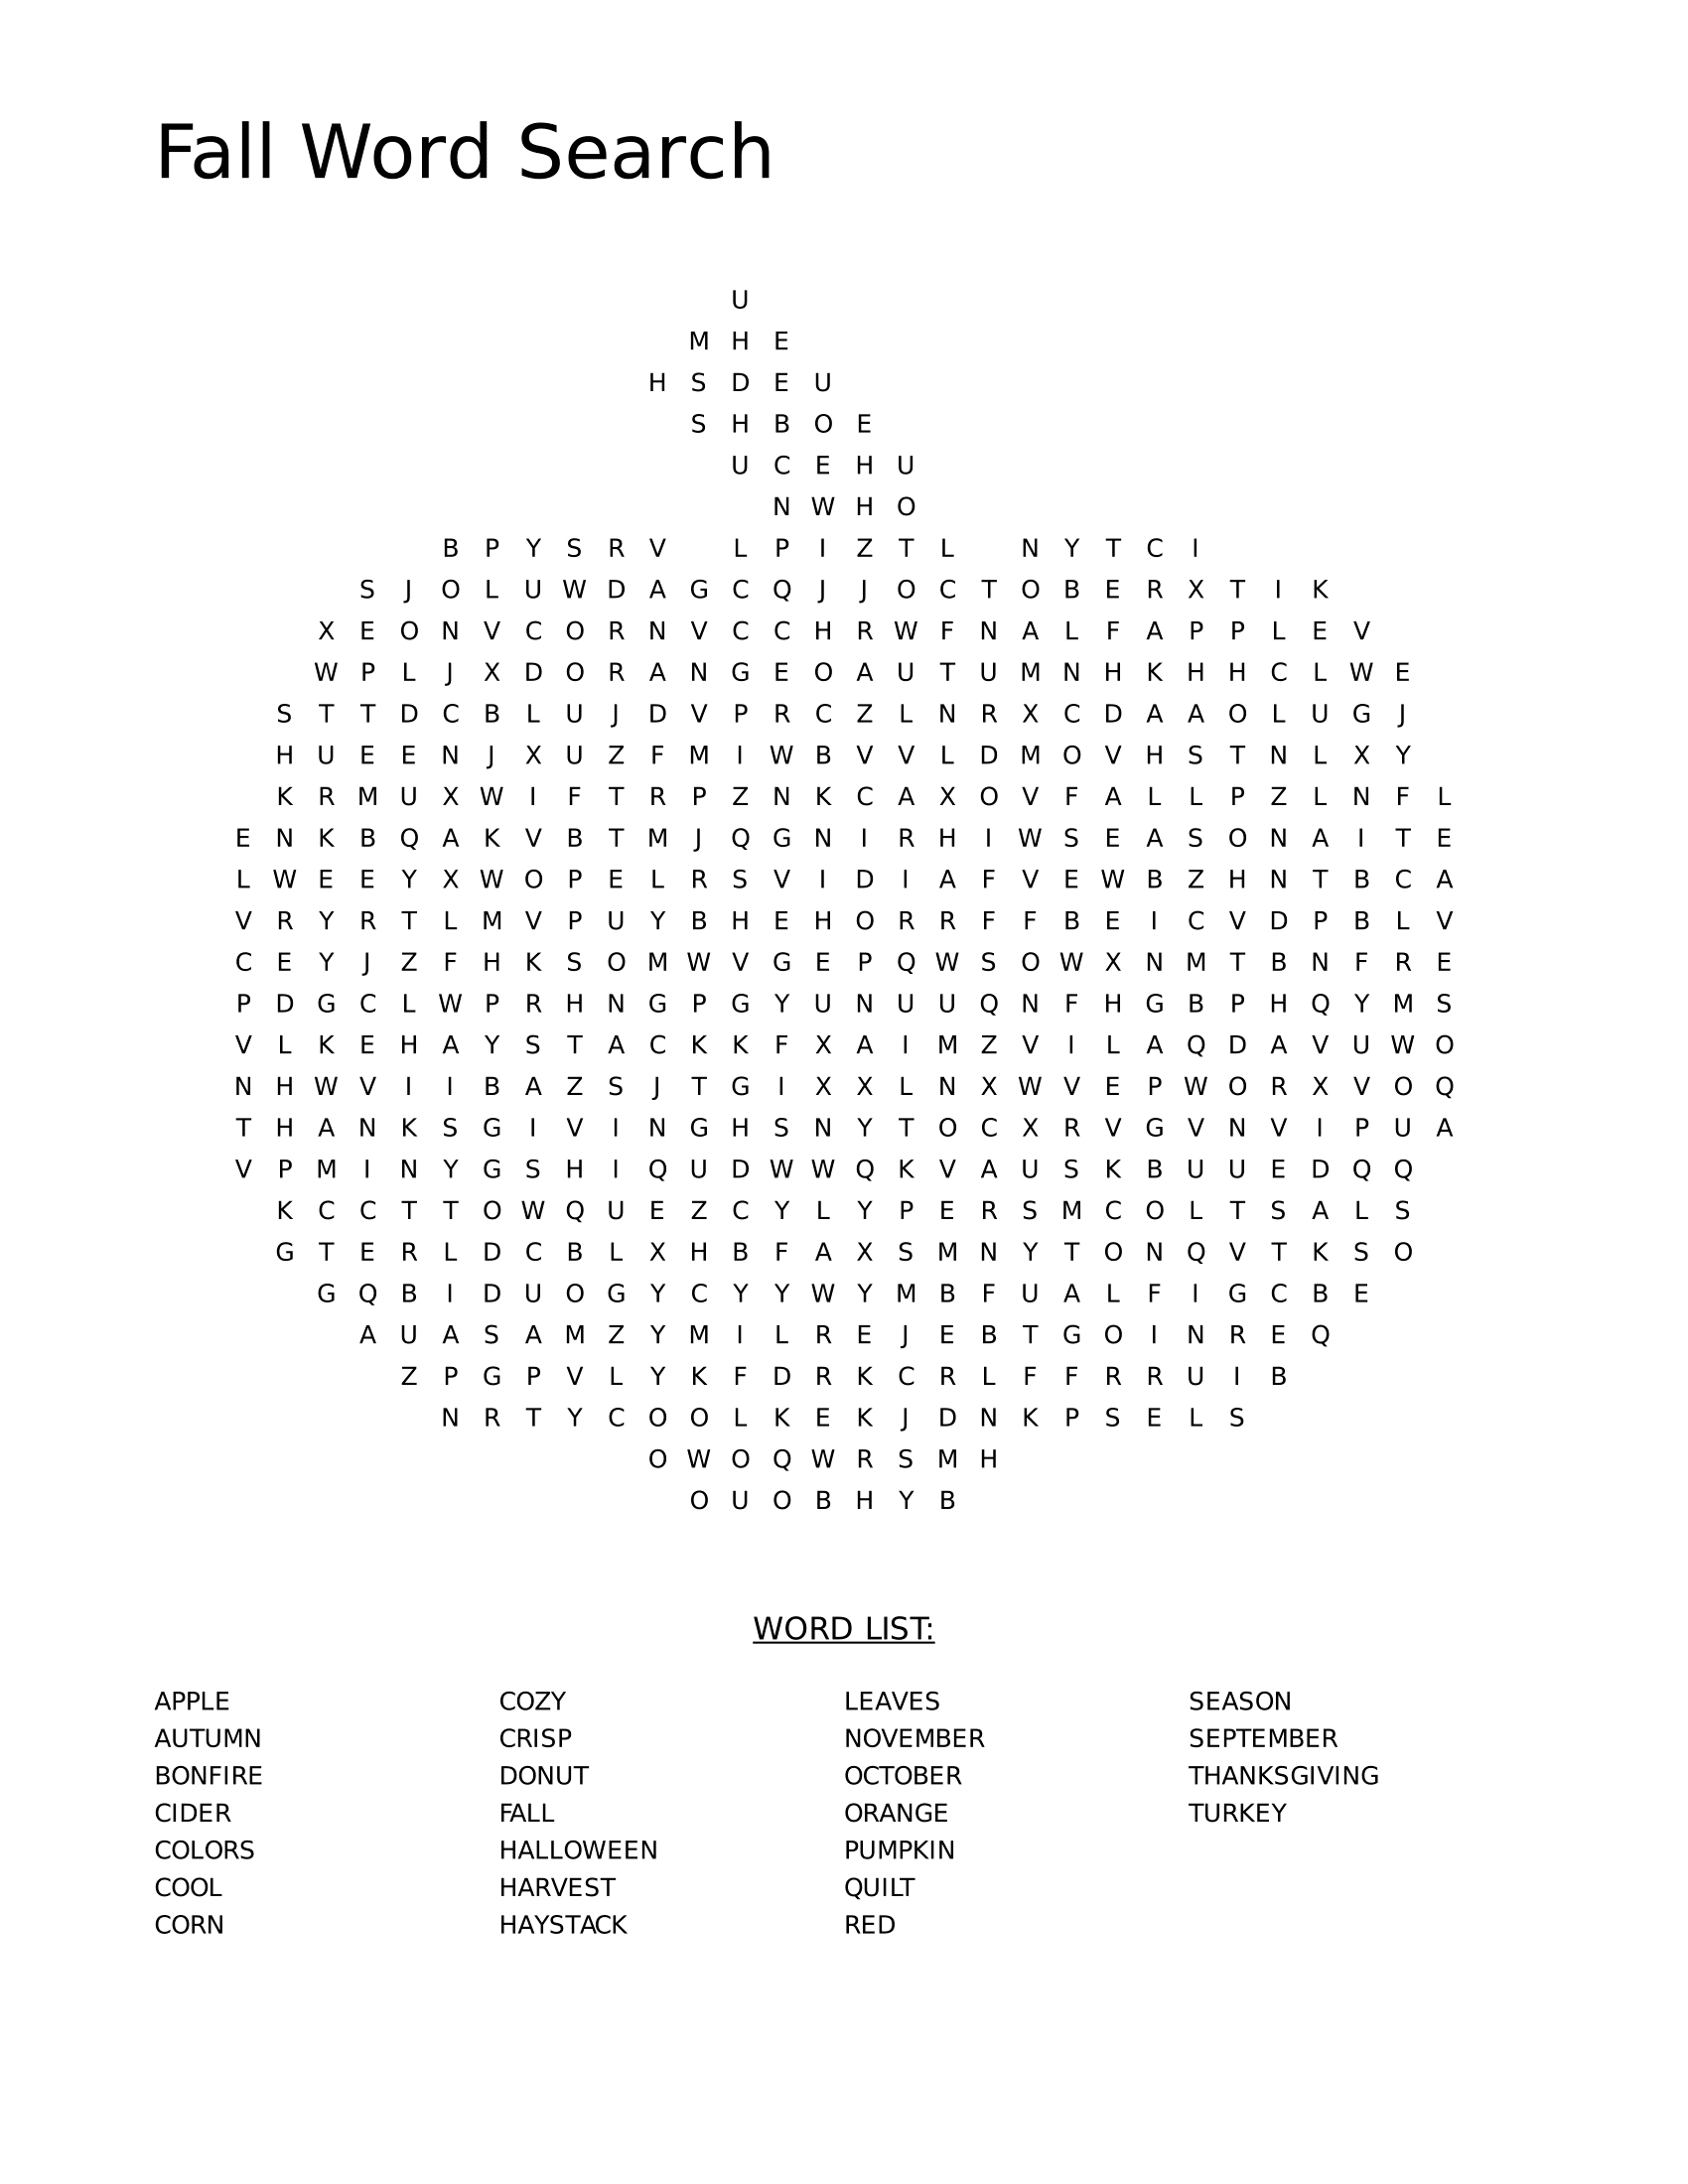 Fall Word Search Printable Apple png